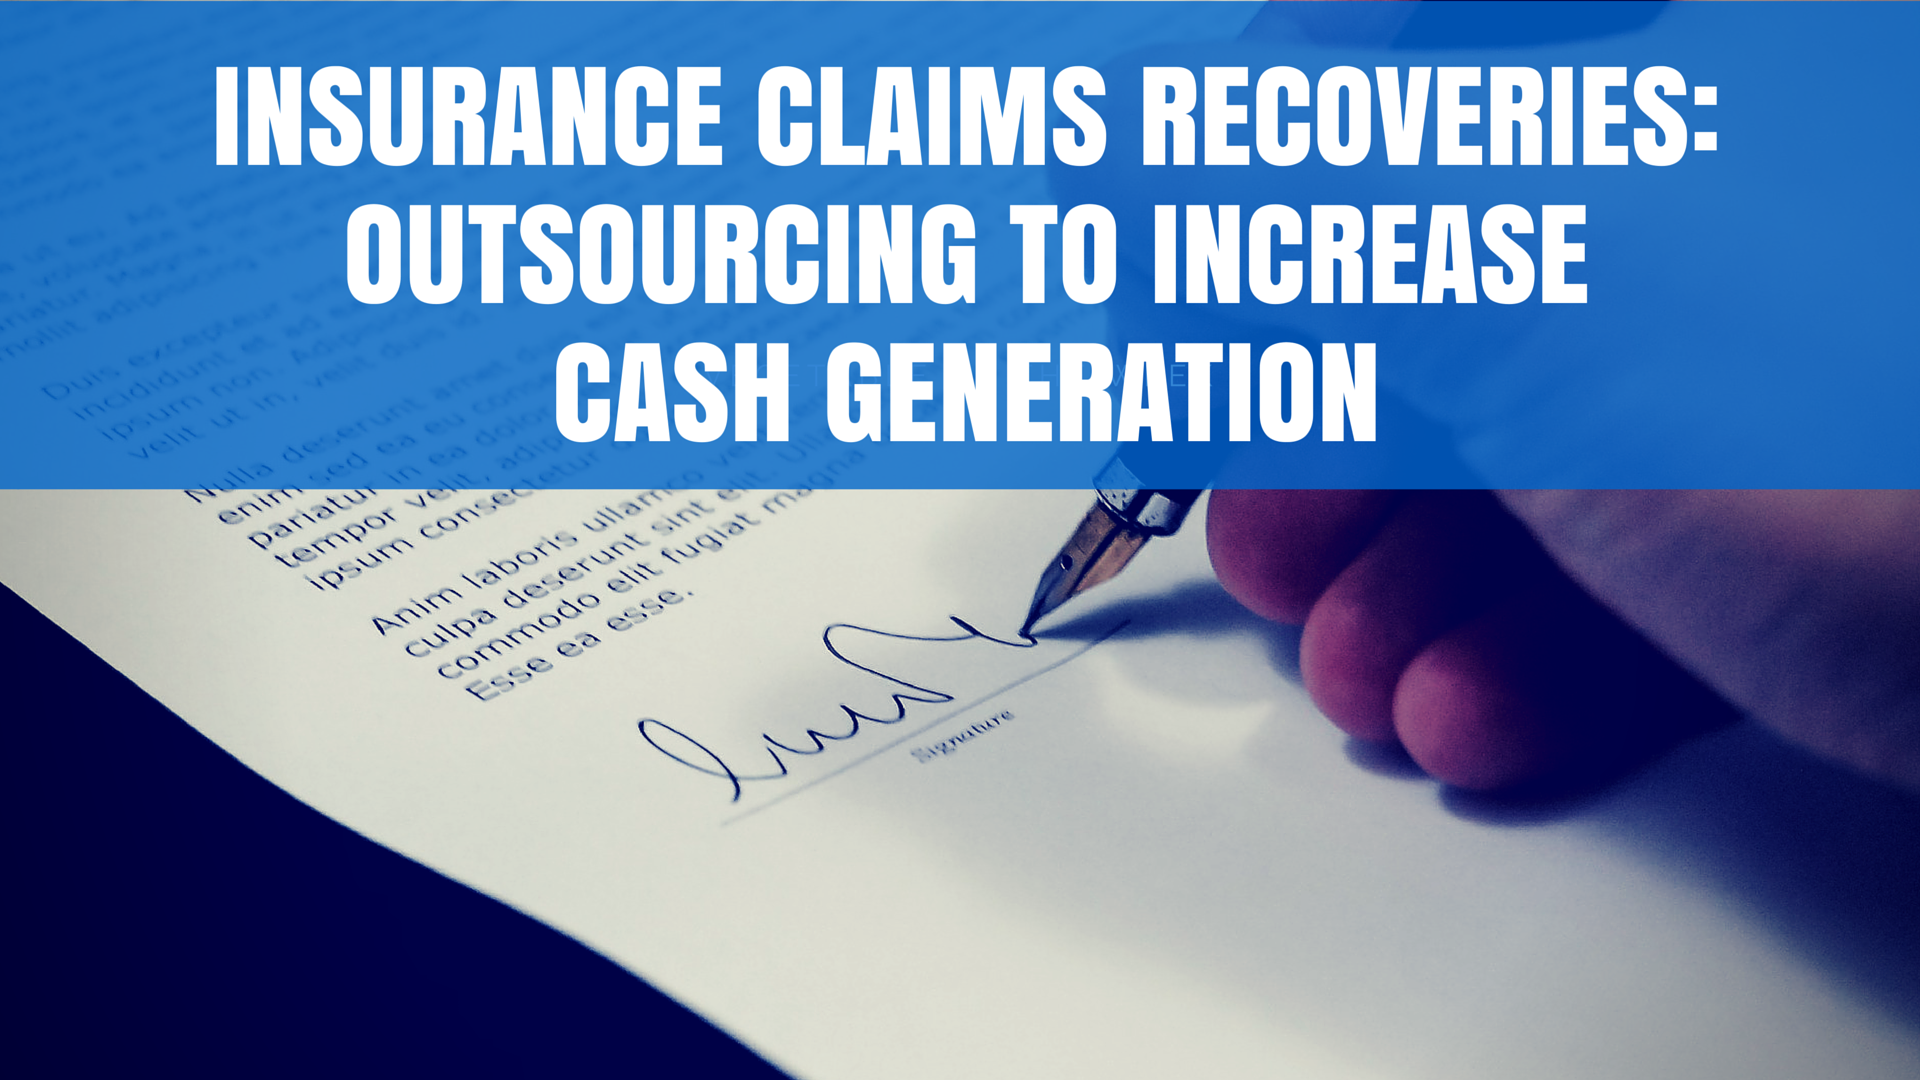 Insurance Claims Recoveries: Outsourcing to Increase Cash Generation